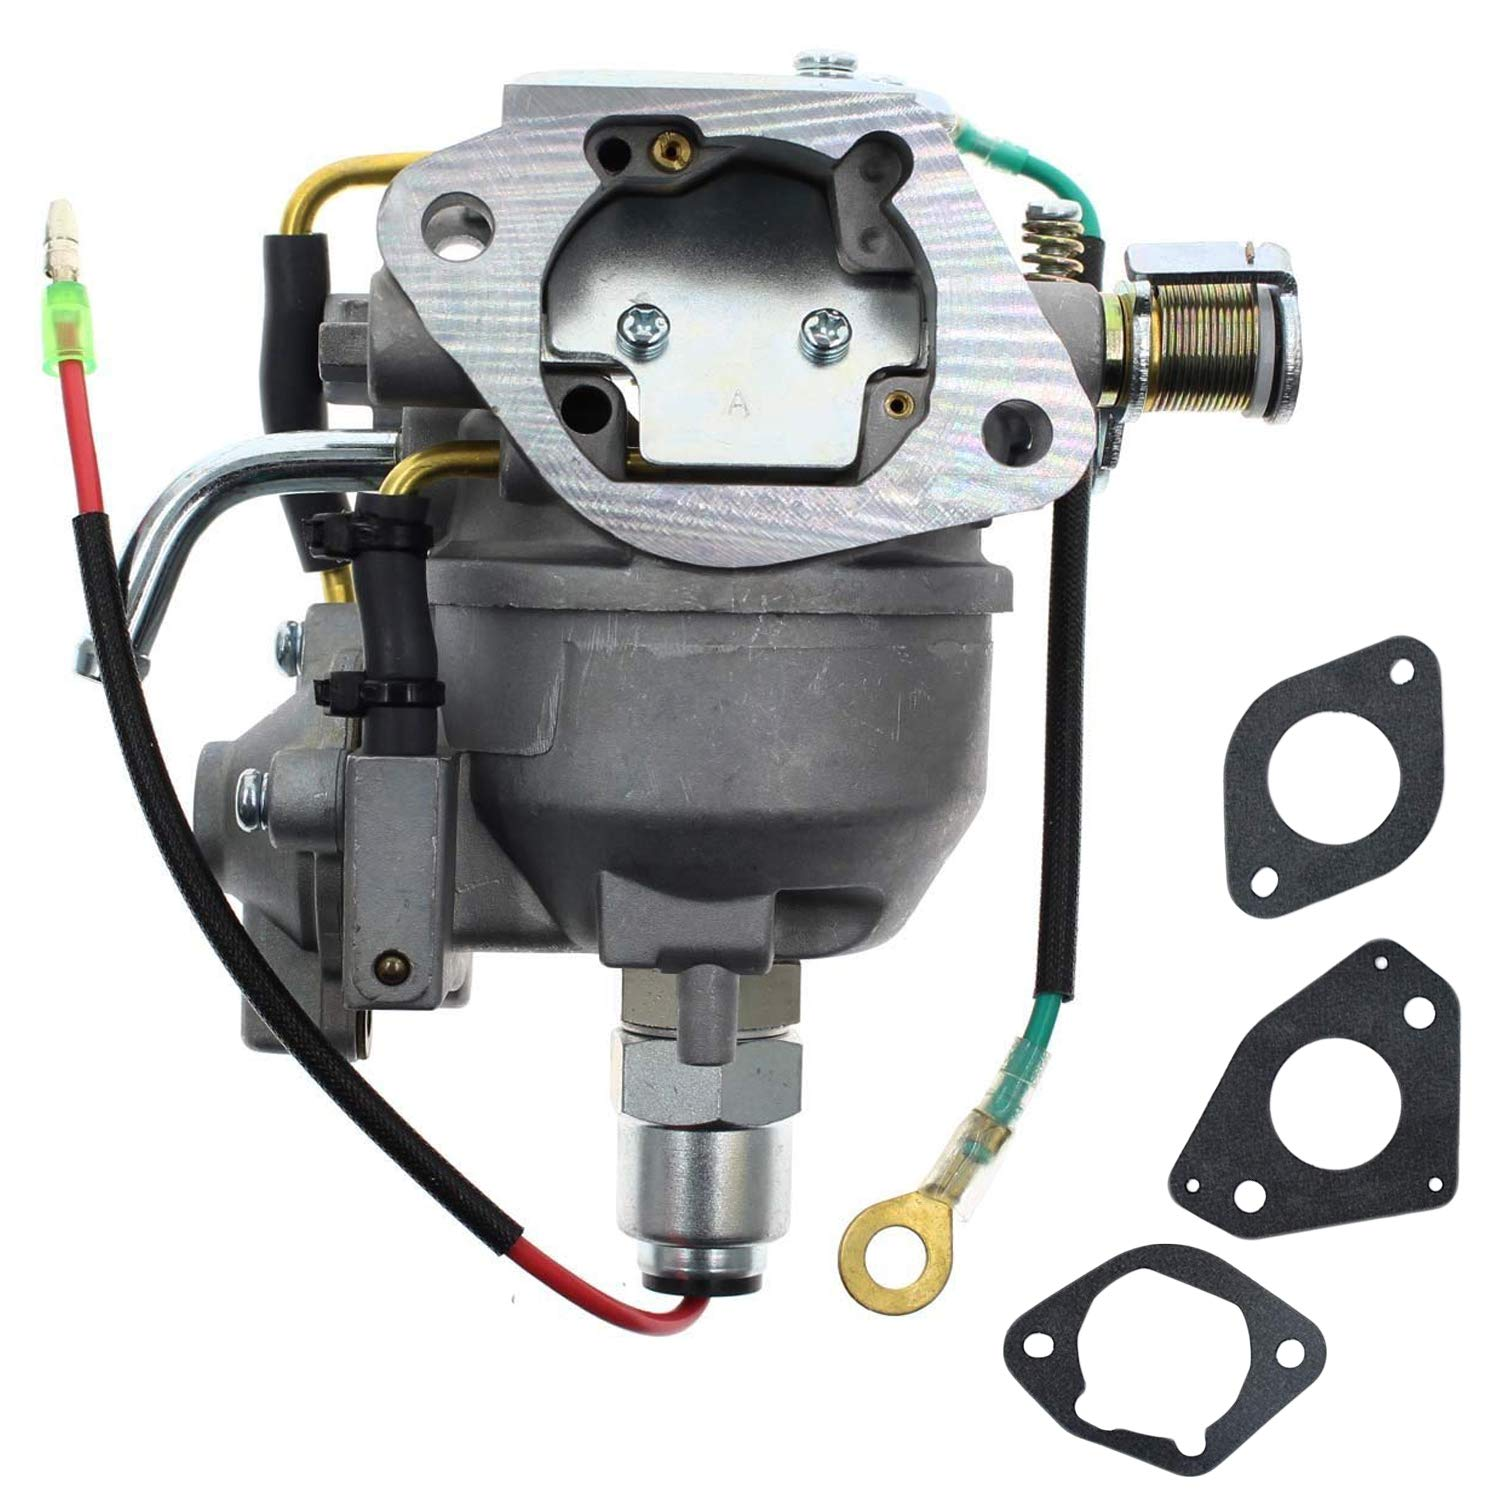 Yootop New Carburetor CV25-27HP CV730S-CV740S Series Replace 24-853-102-S CV730 CV740